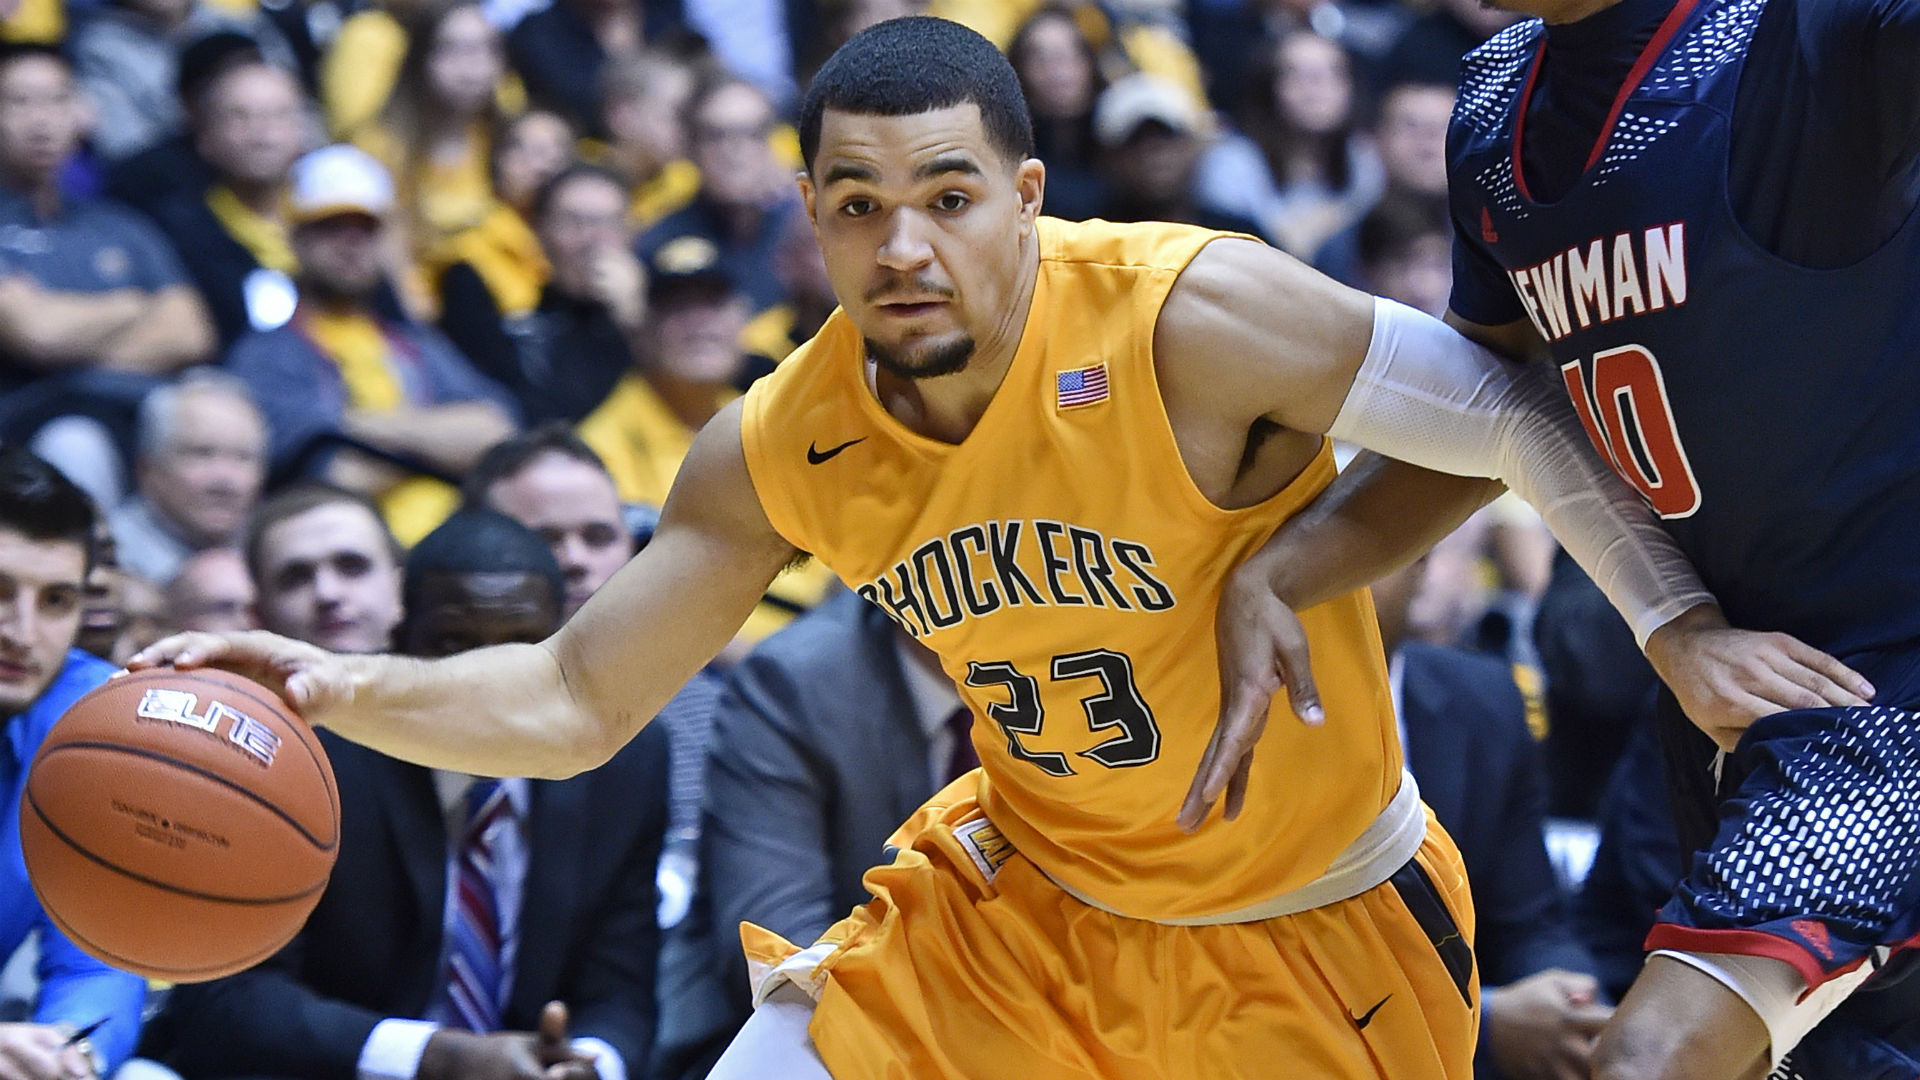 Tuesday college basketball betting preview - Can Tide roll to signature win at Wichita State?